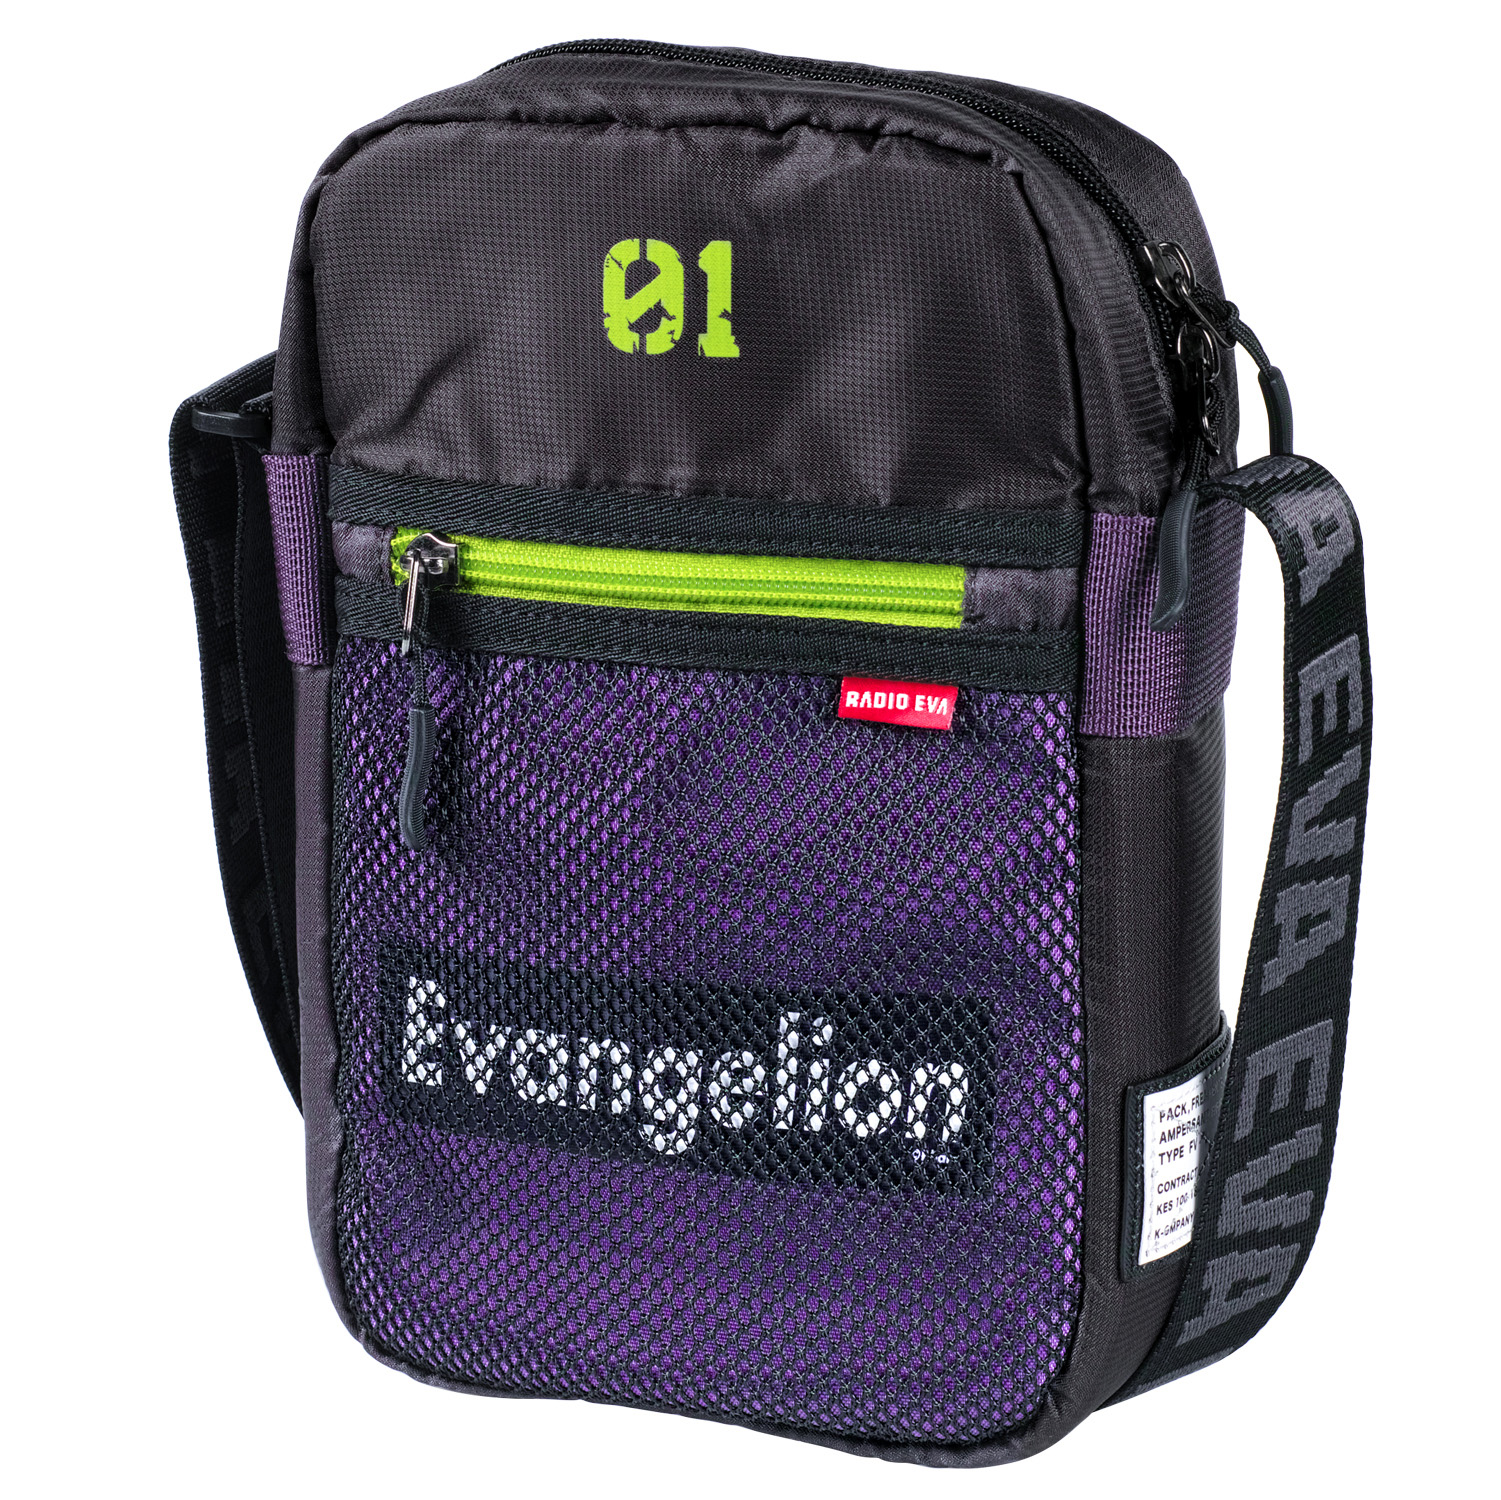 EVANGELION CORE SHOULDER BAG by FIRE FIRST (EVA-01 MODEL)